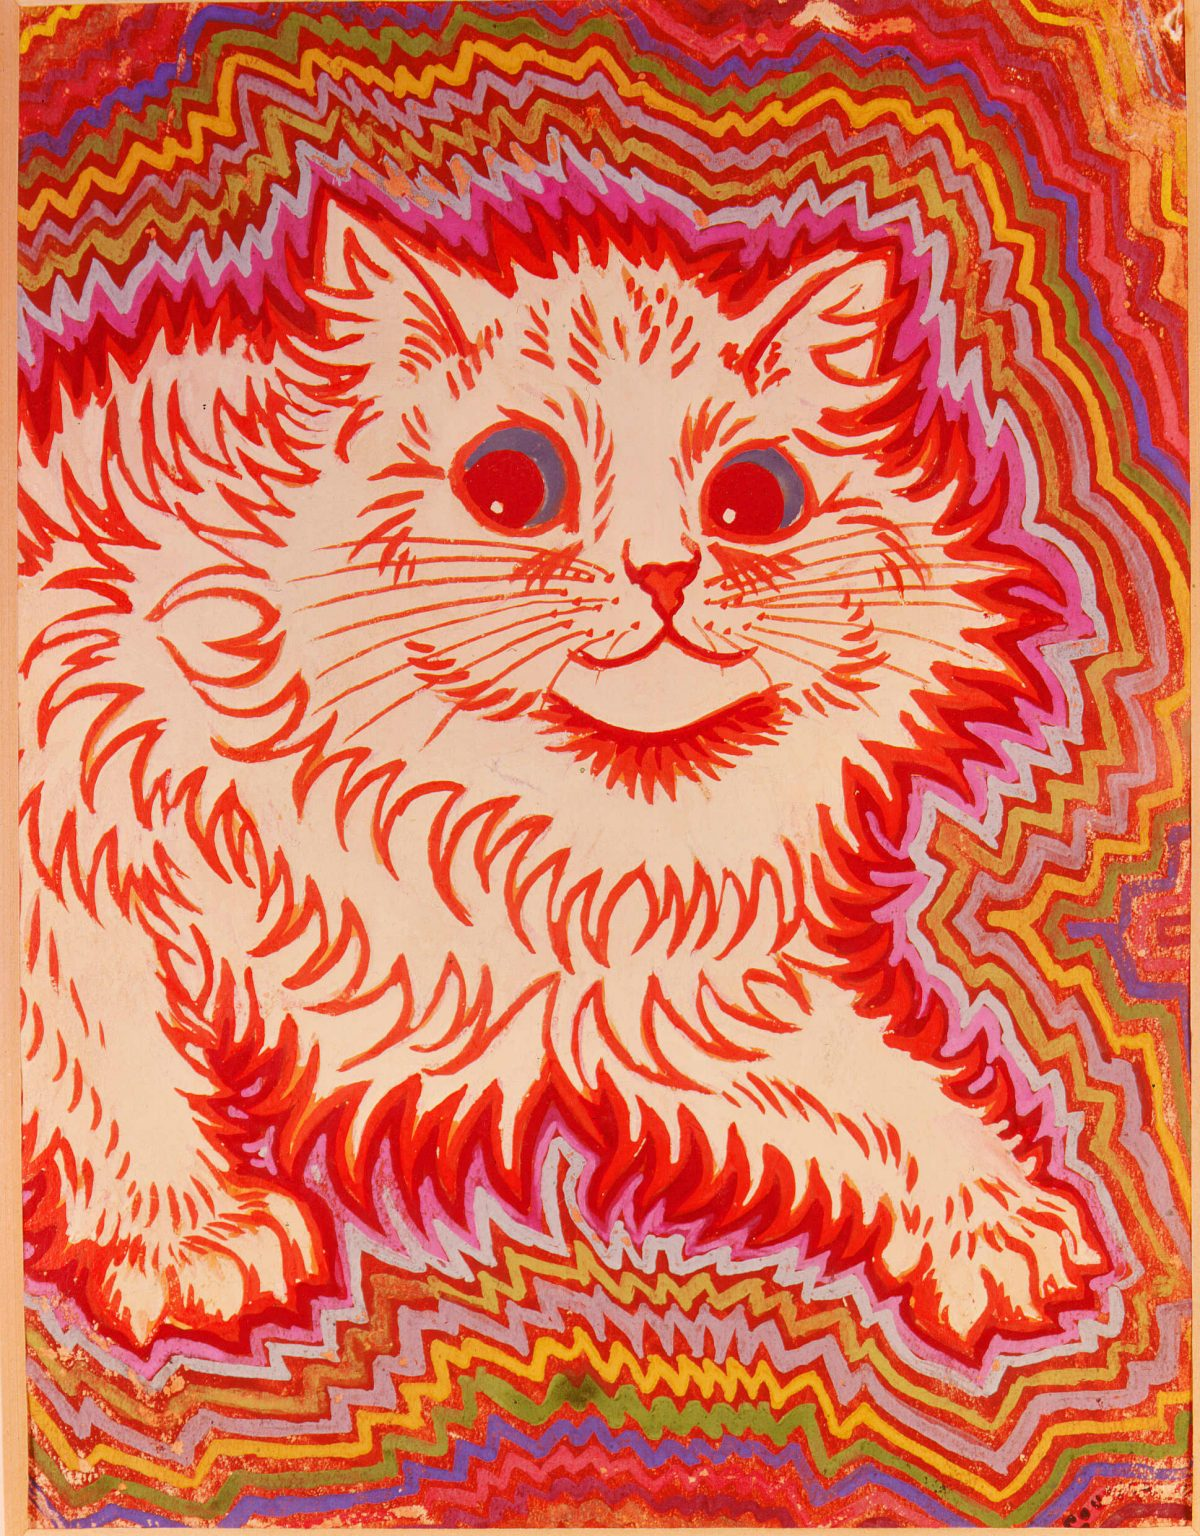 Advancing cat (Louis Wain)